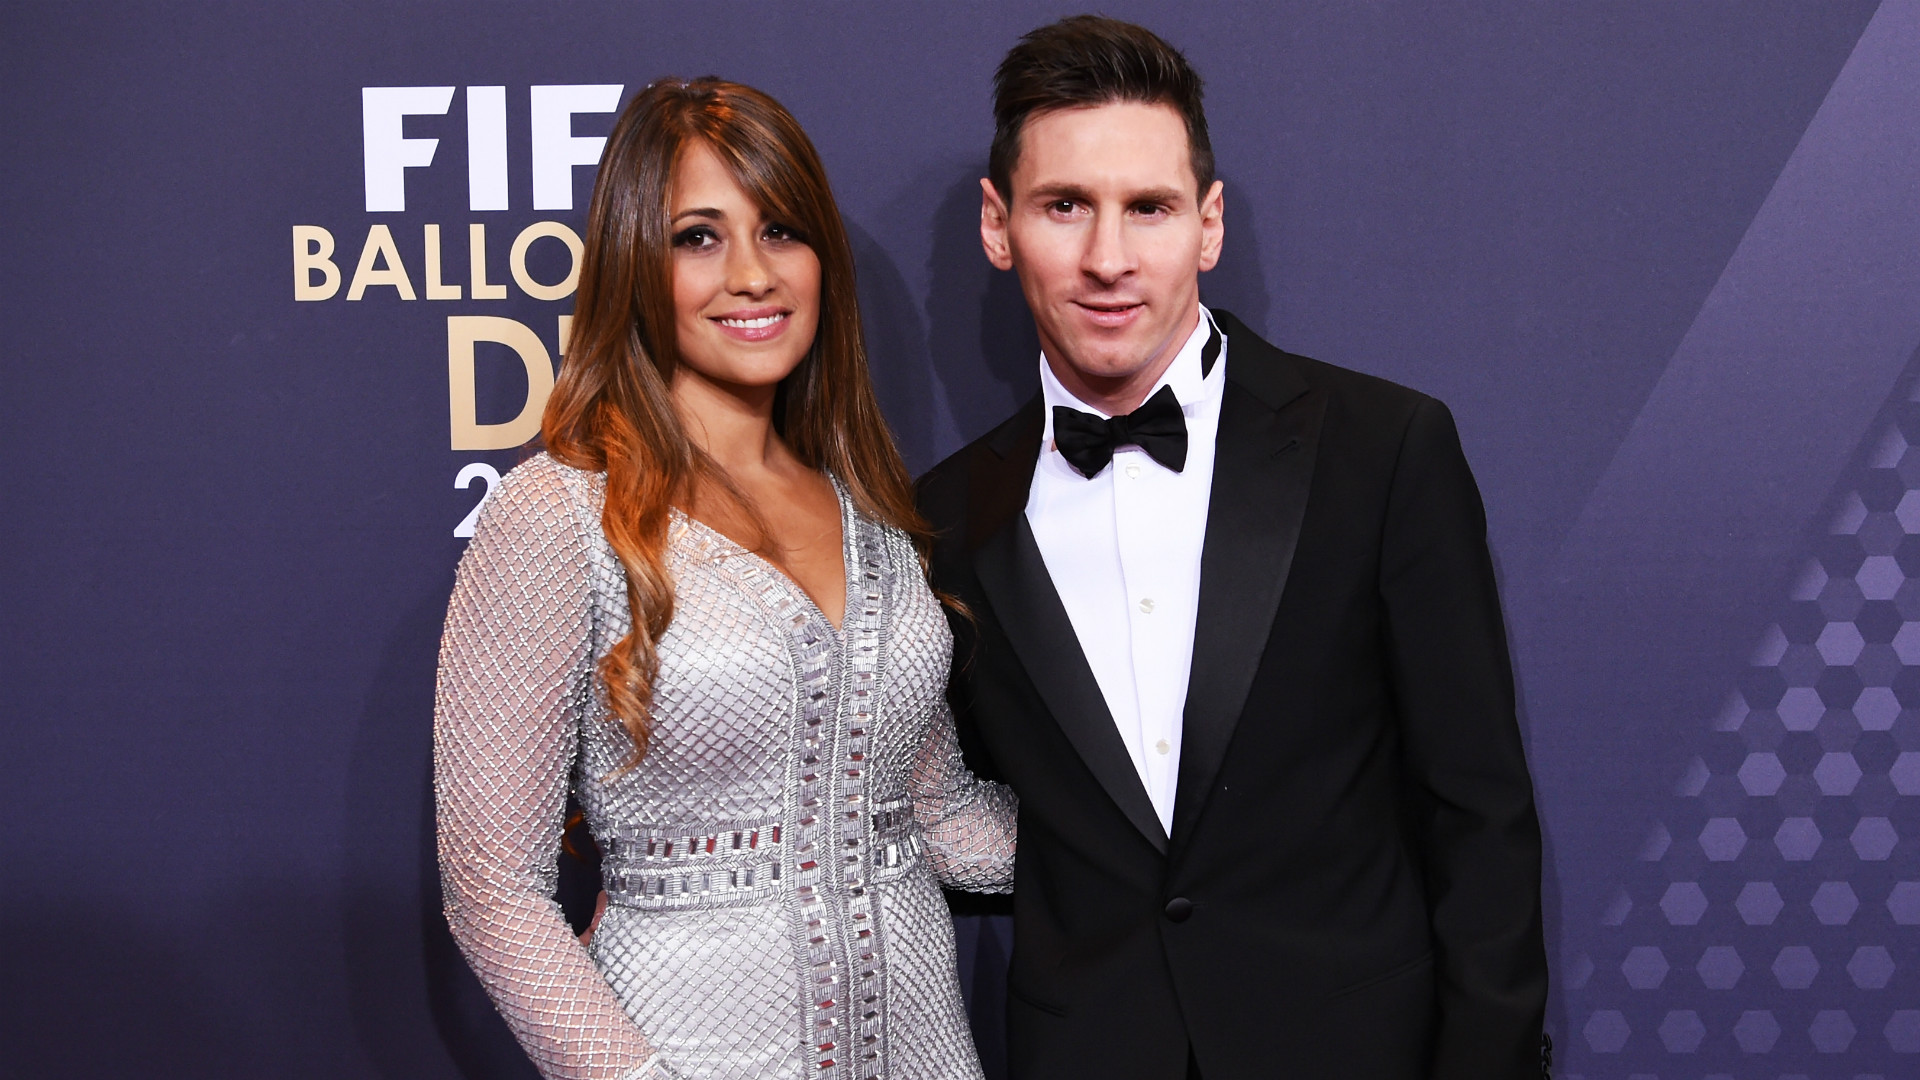 Messi dating history